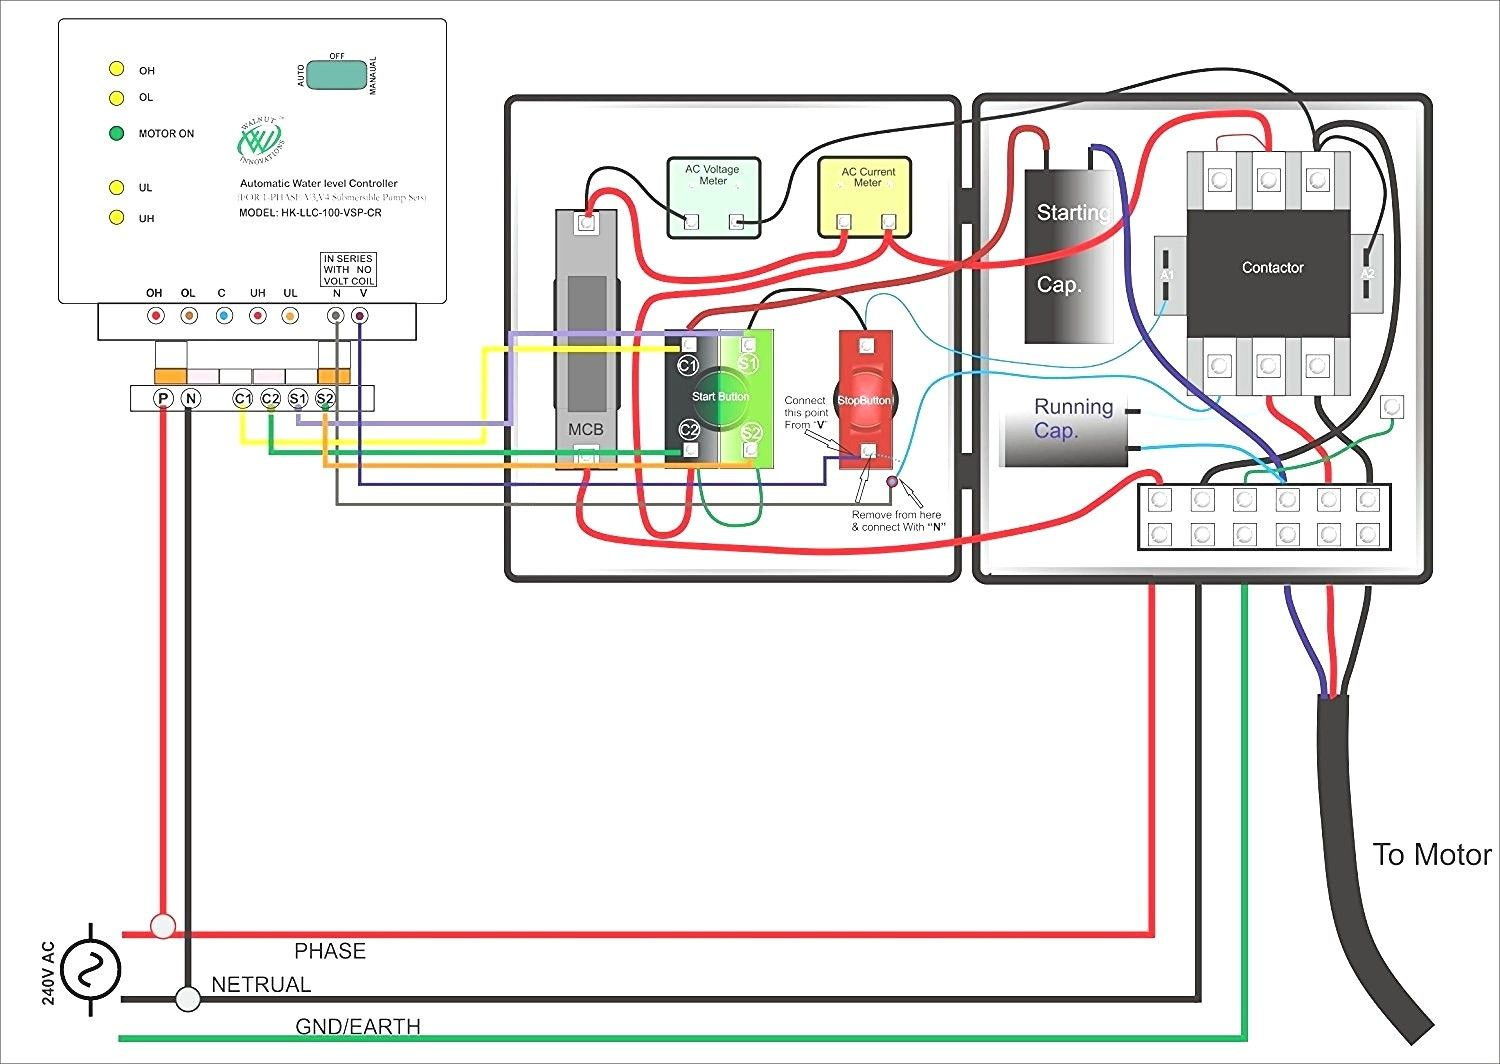 Meter Box On With Residential Electrical Panel Ground Wiring Diagram